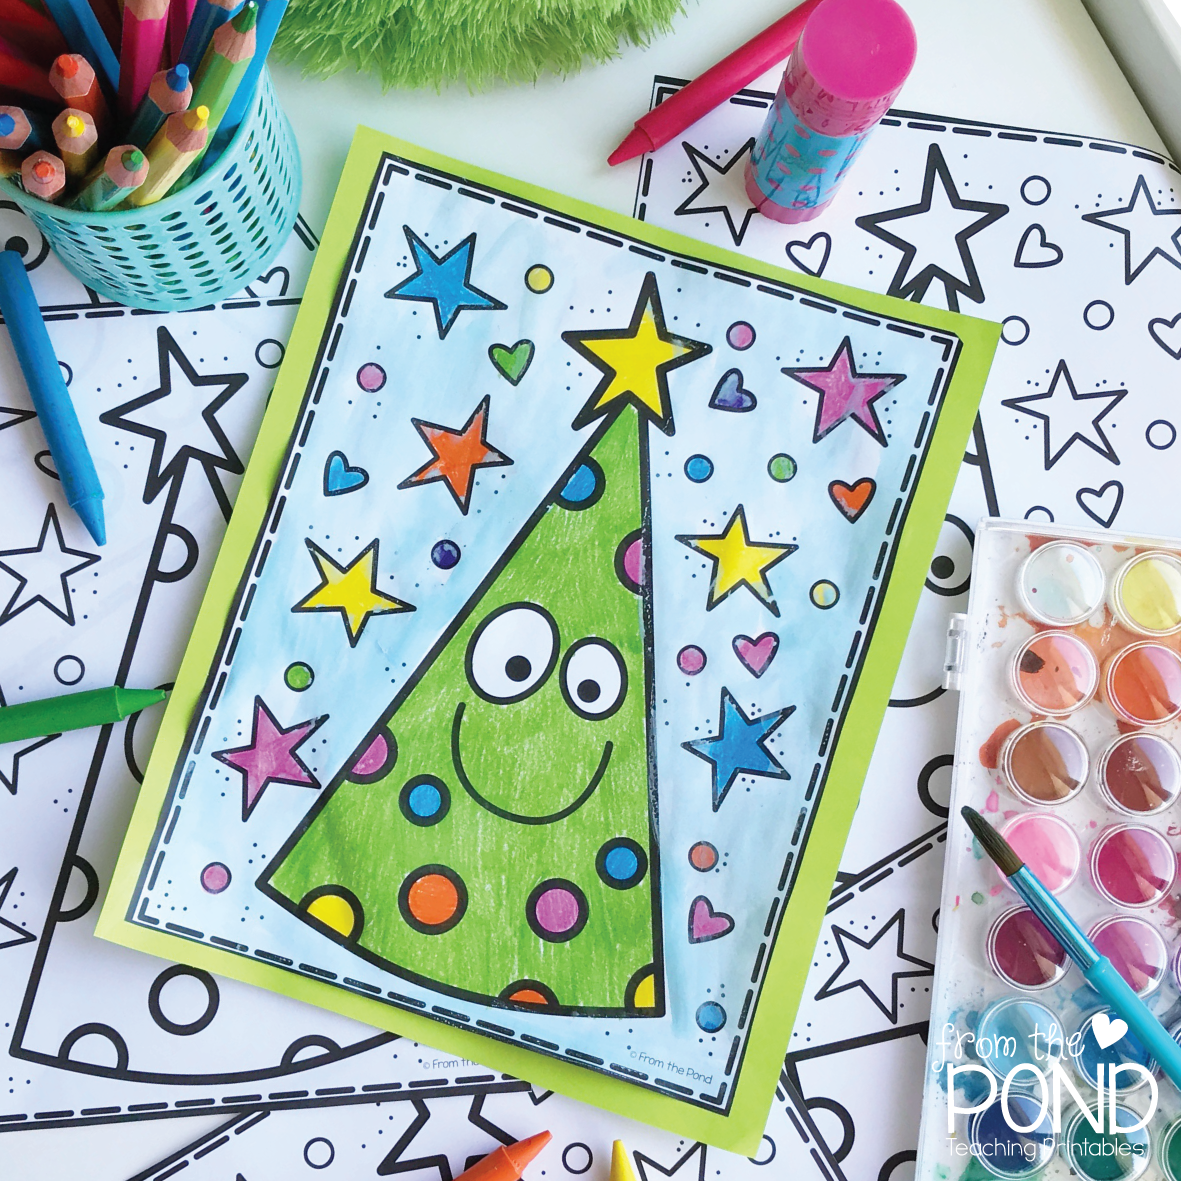 Christmas Tree Coloring Page | From the Pond